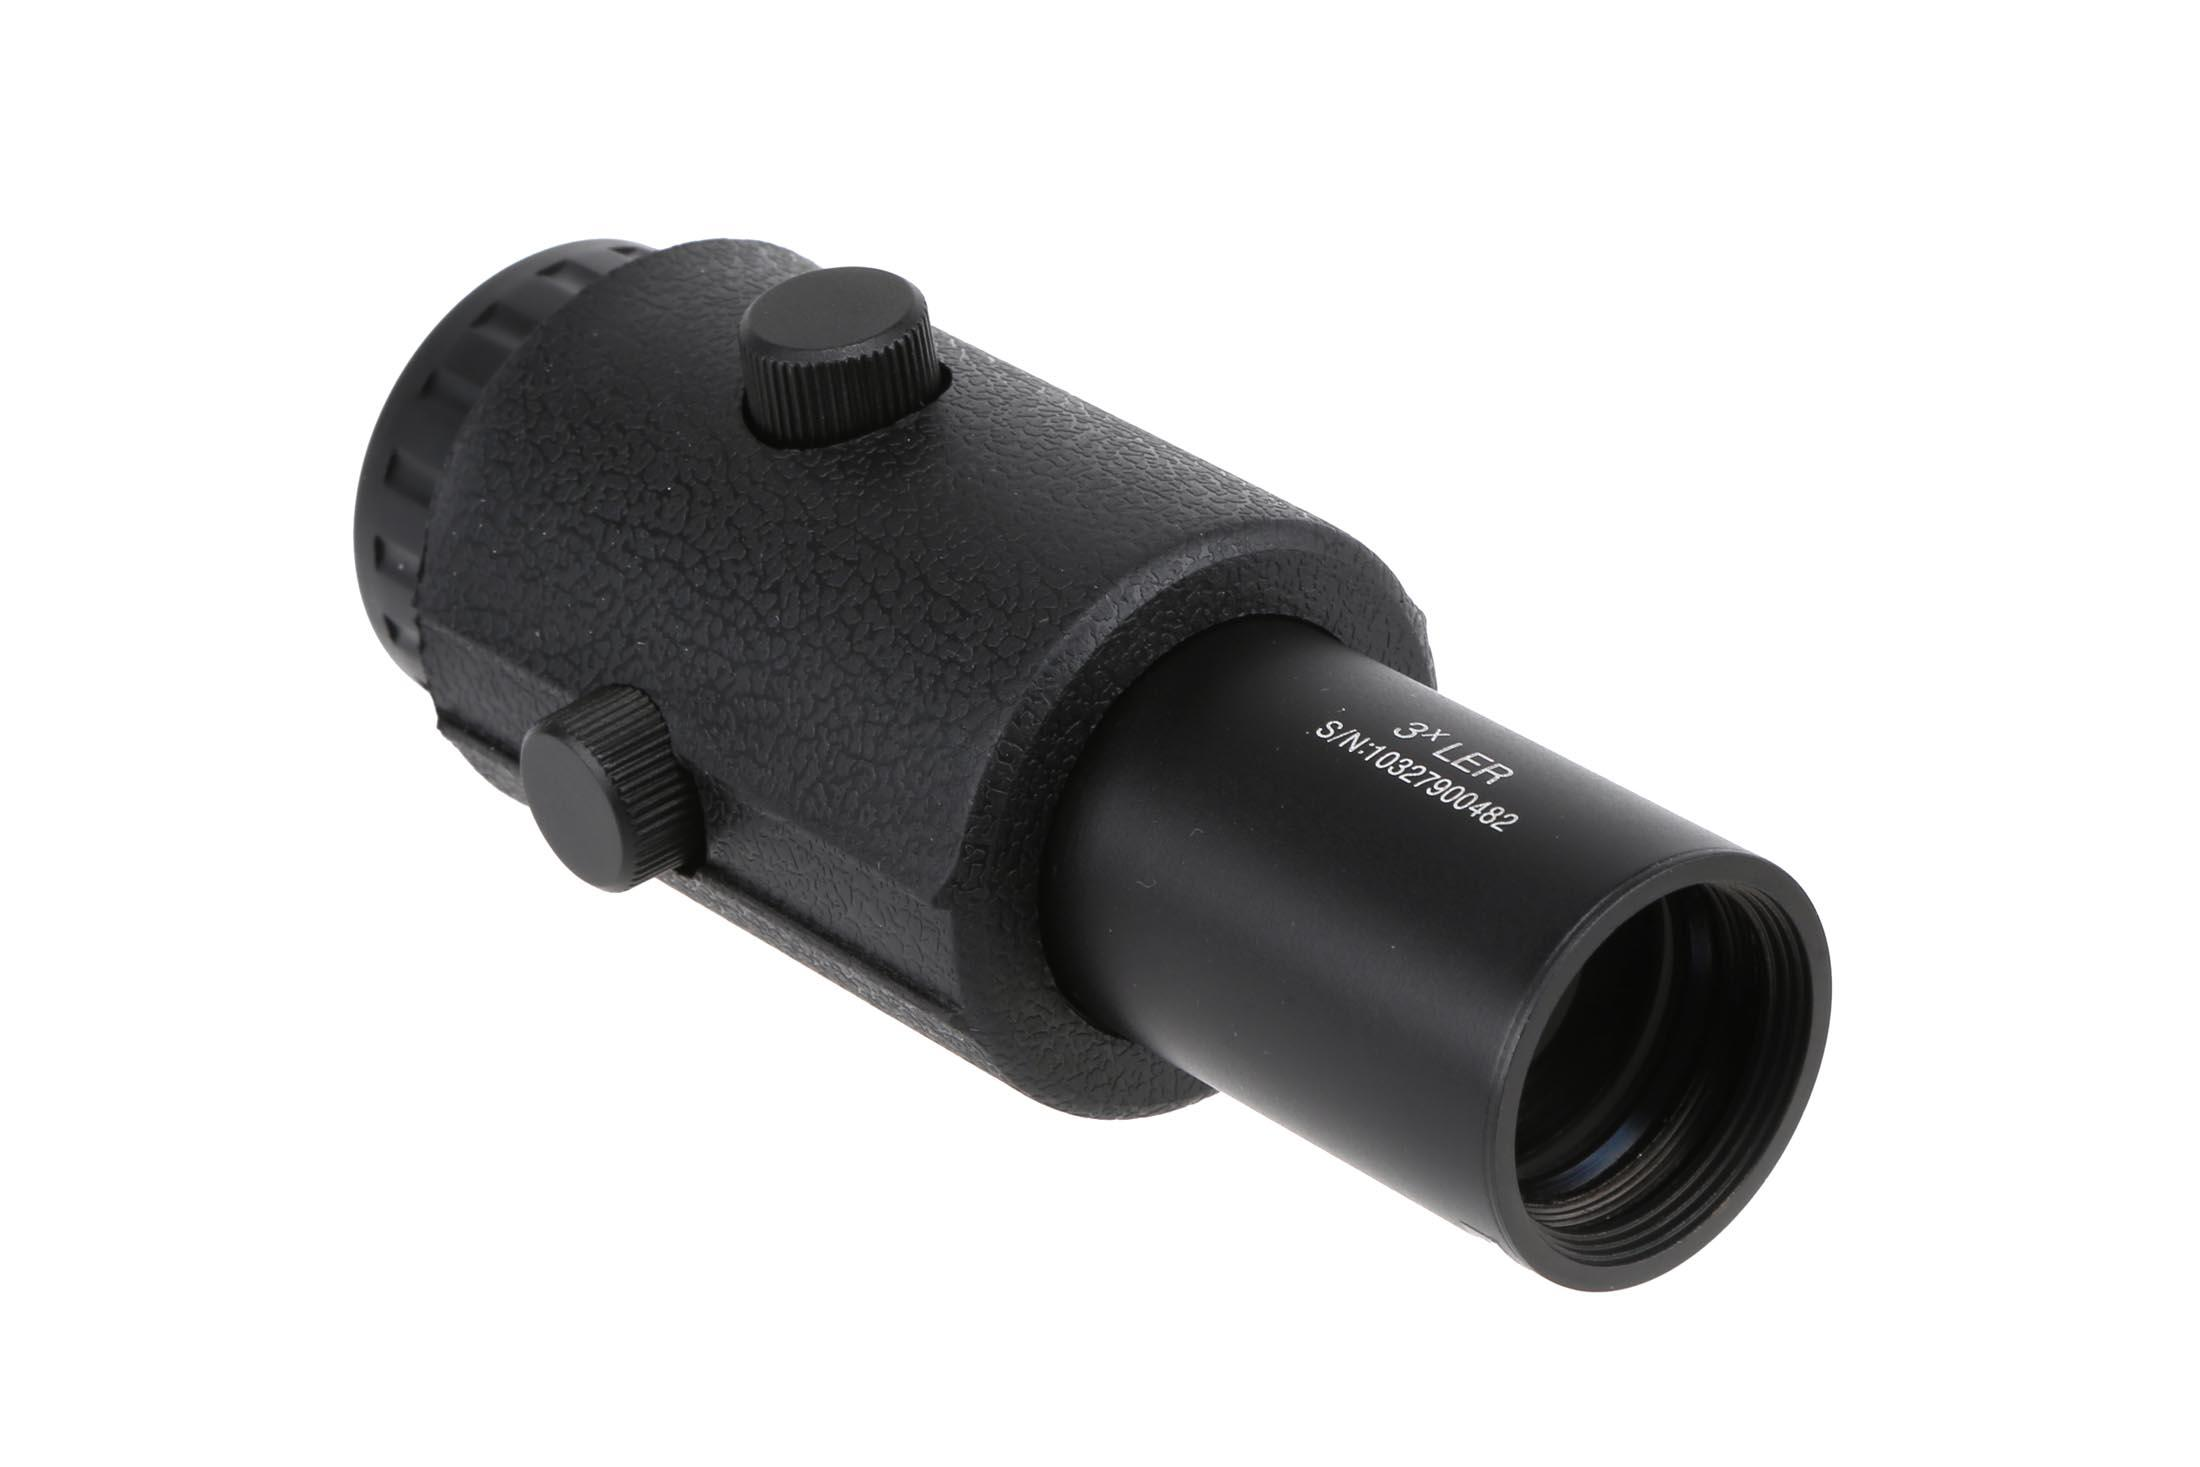 The Primary Arms 3X Red Dot magnifier gen IV features a long eye relief